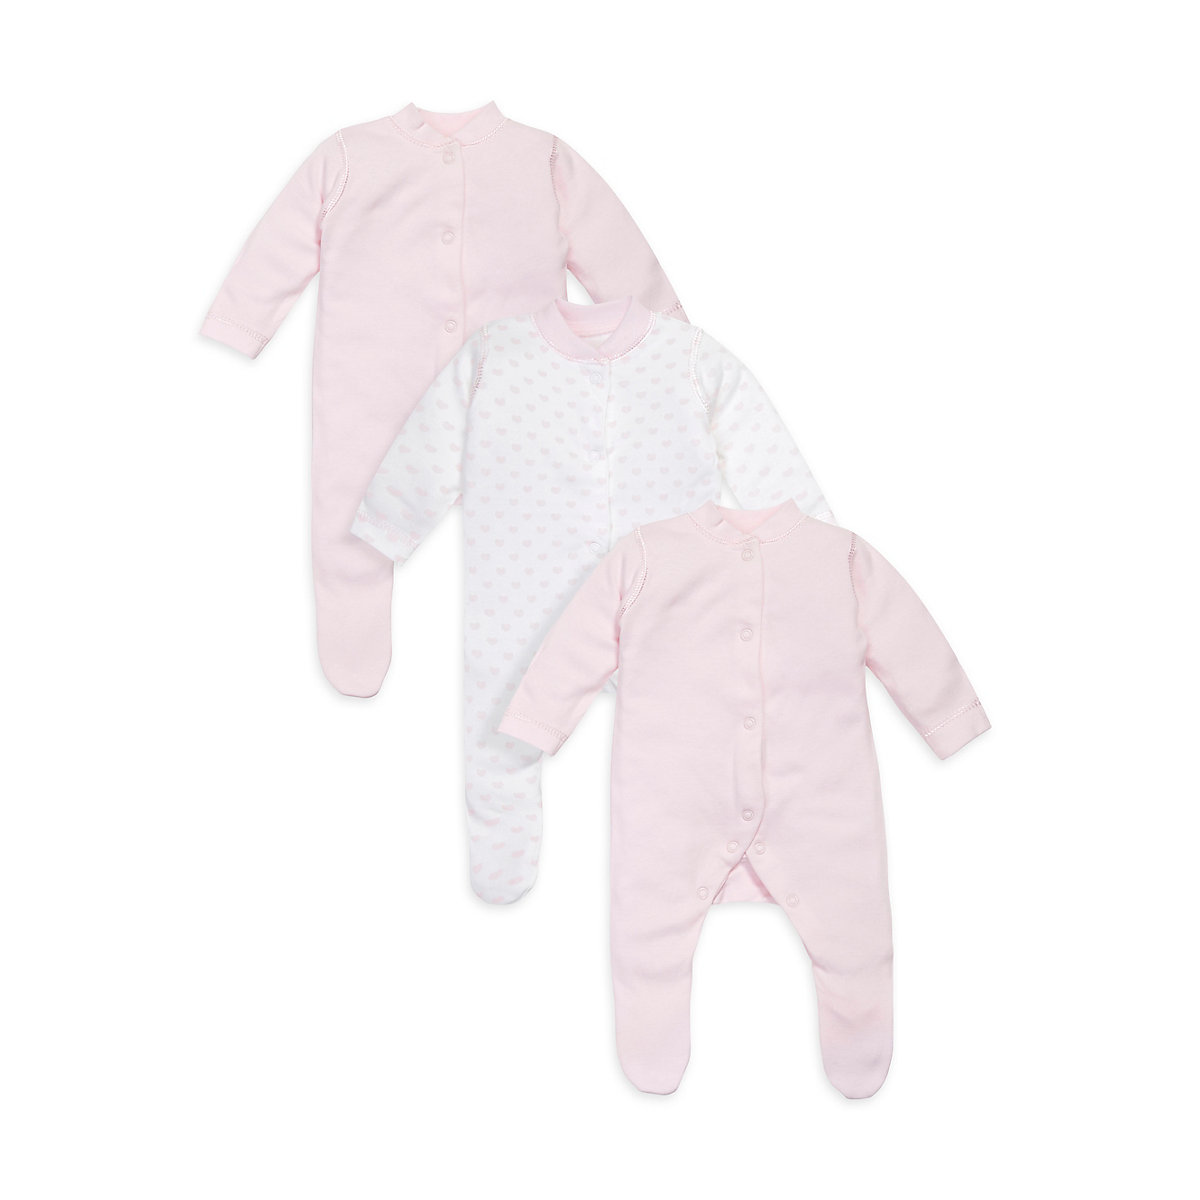 Mothercare My First Pink Sleepsuits 3 pack